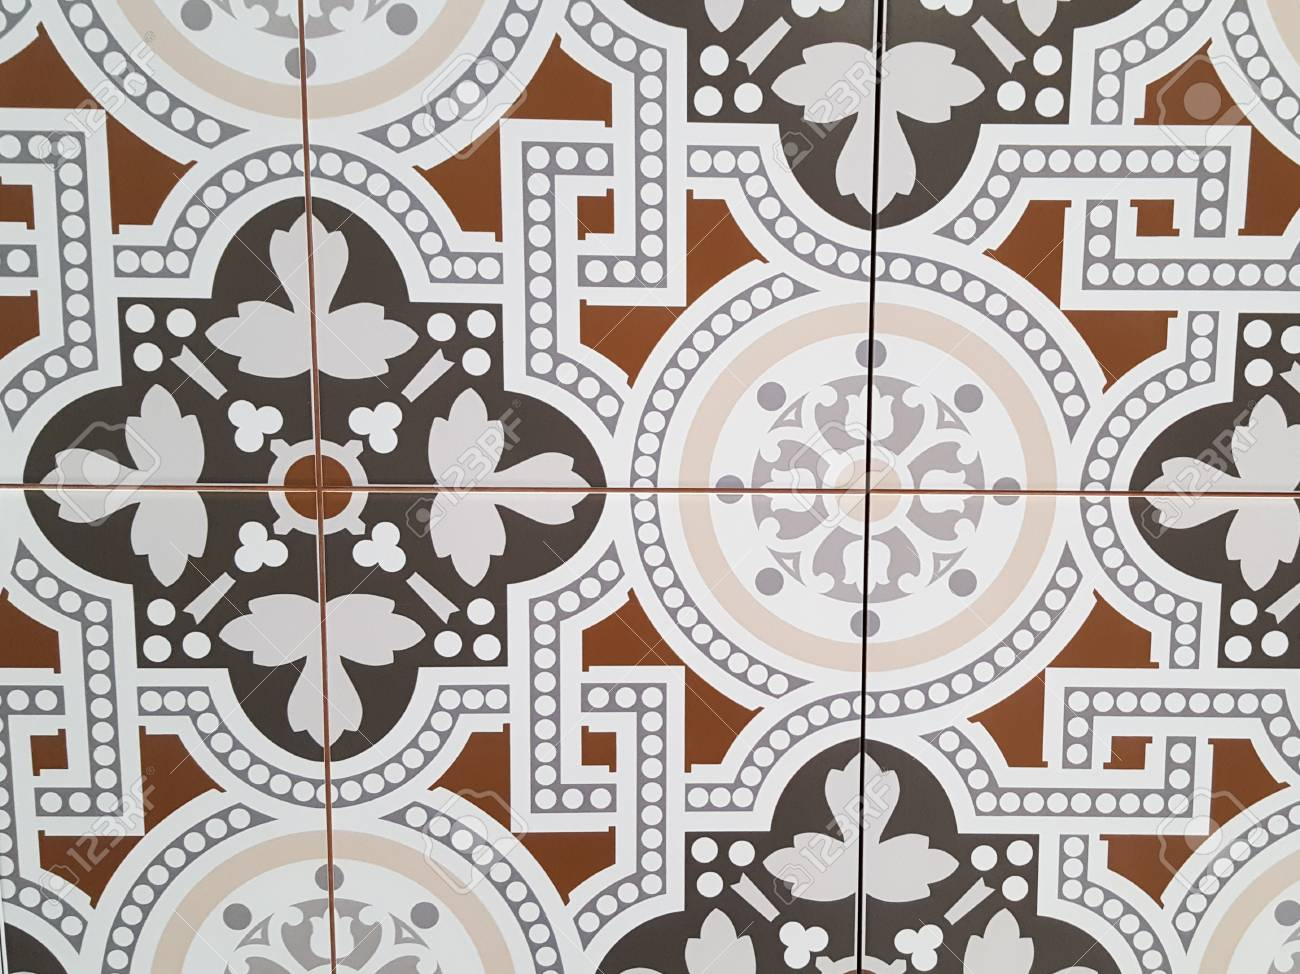 patterned floor and wall tiles modern decor of traditional encaustic